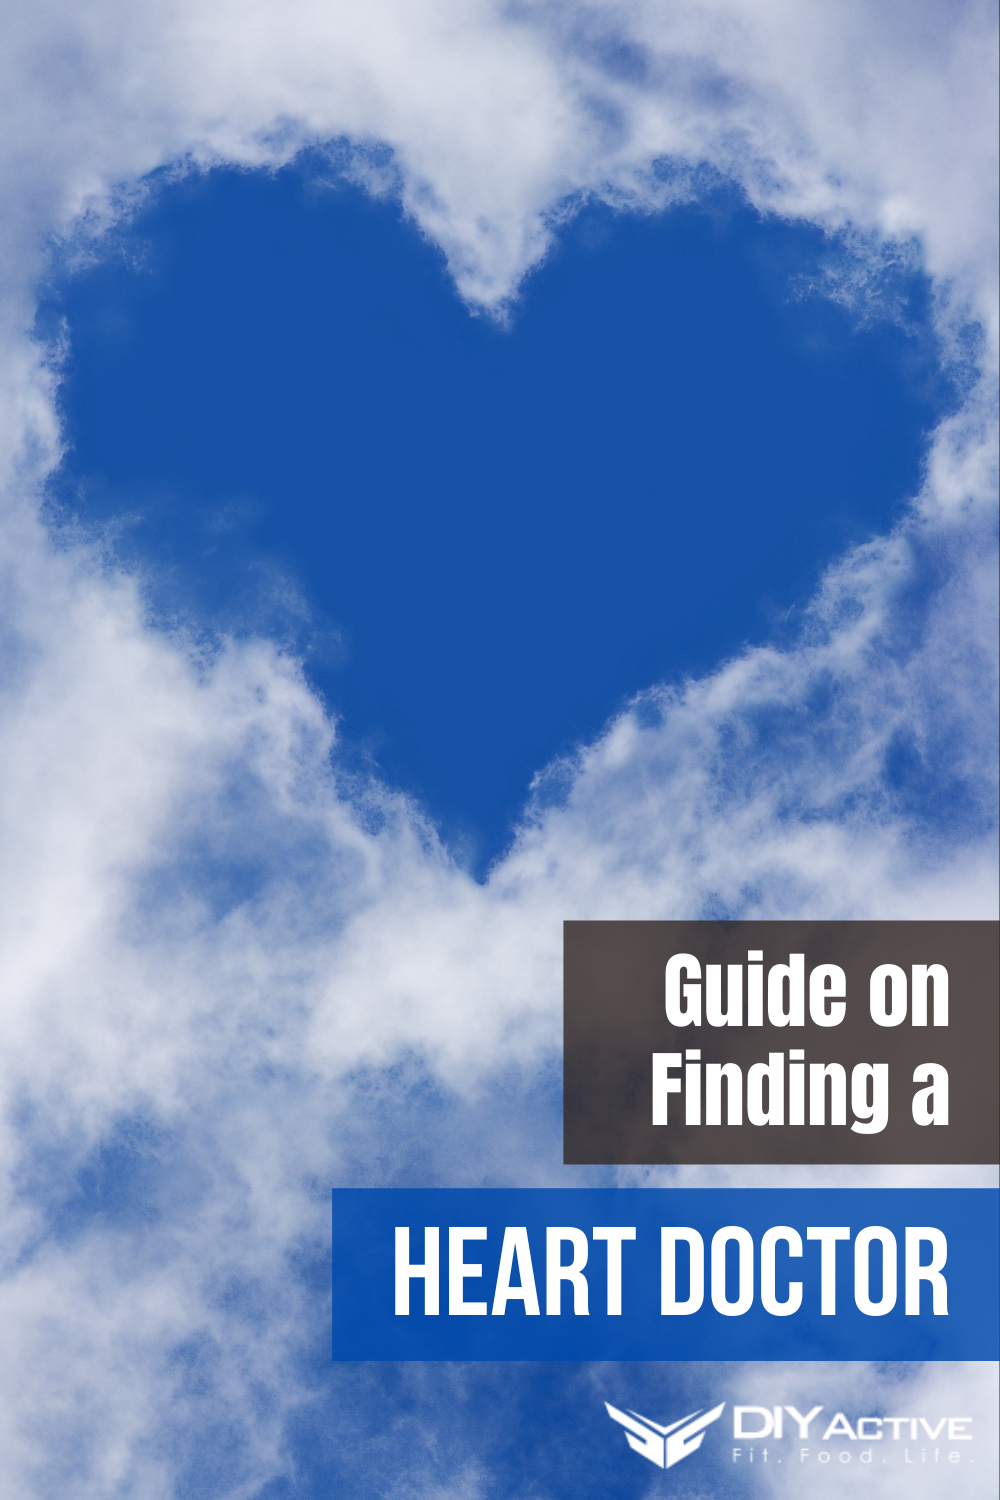 Comprehensive Guide on Finding a Heart Doctor